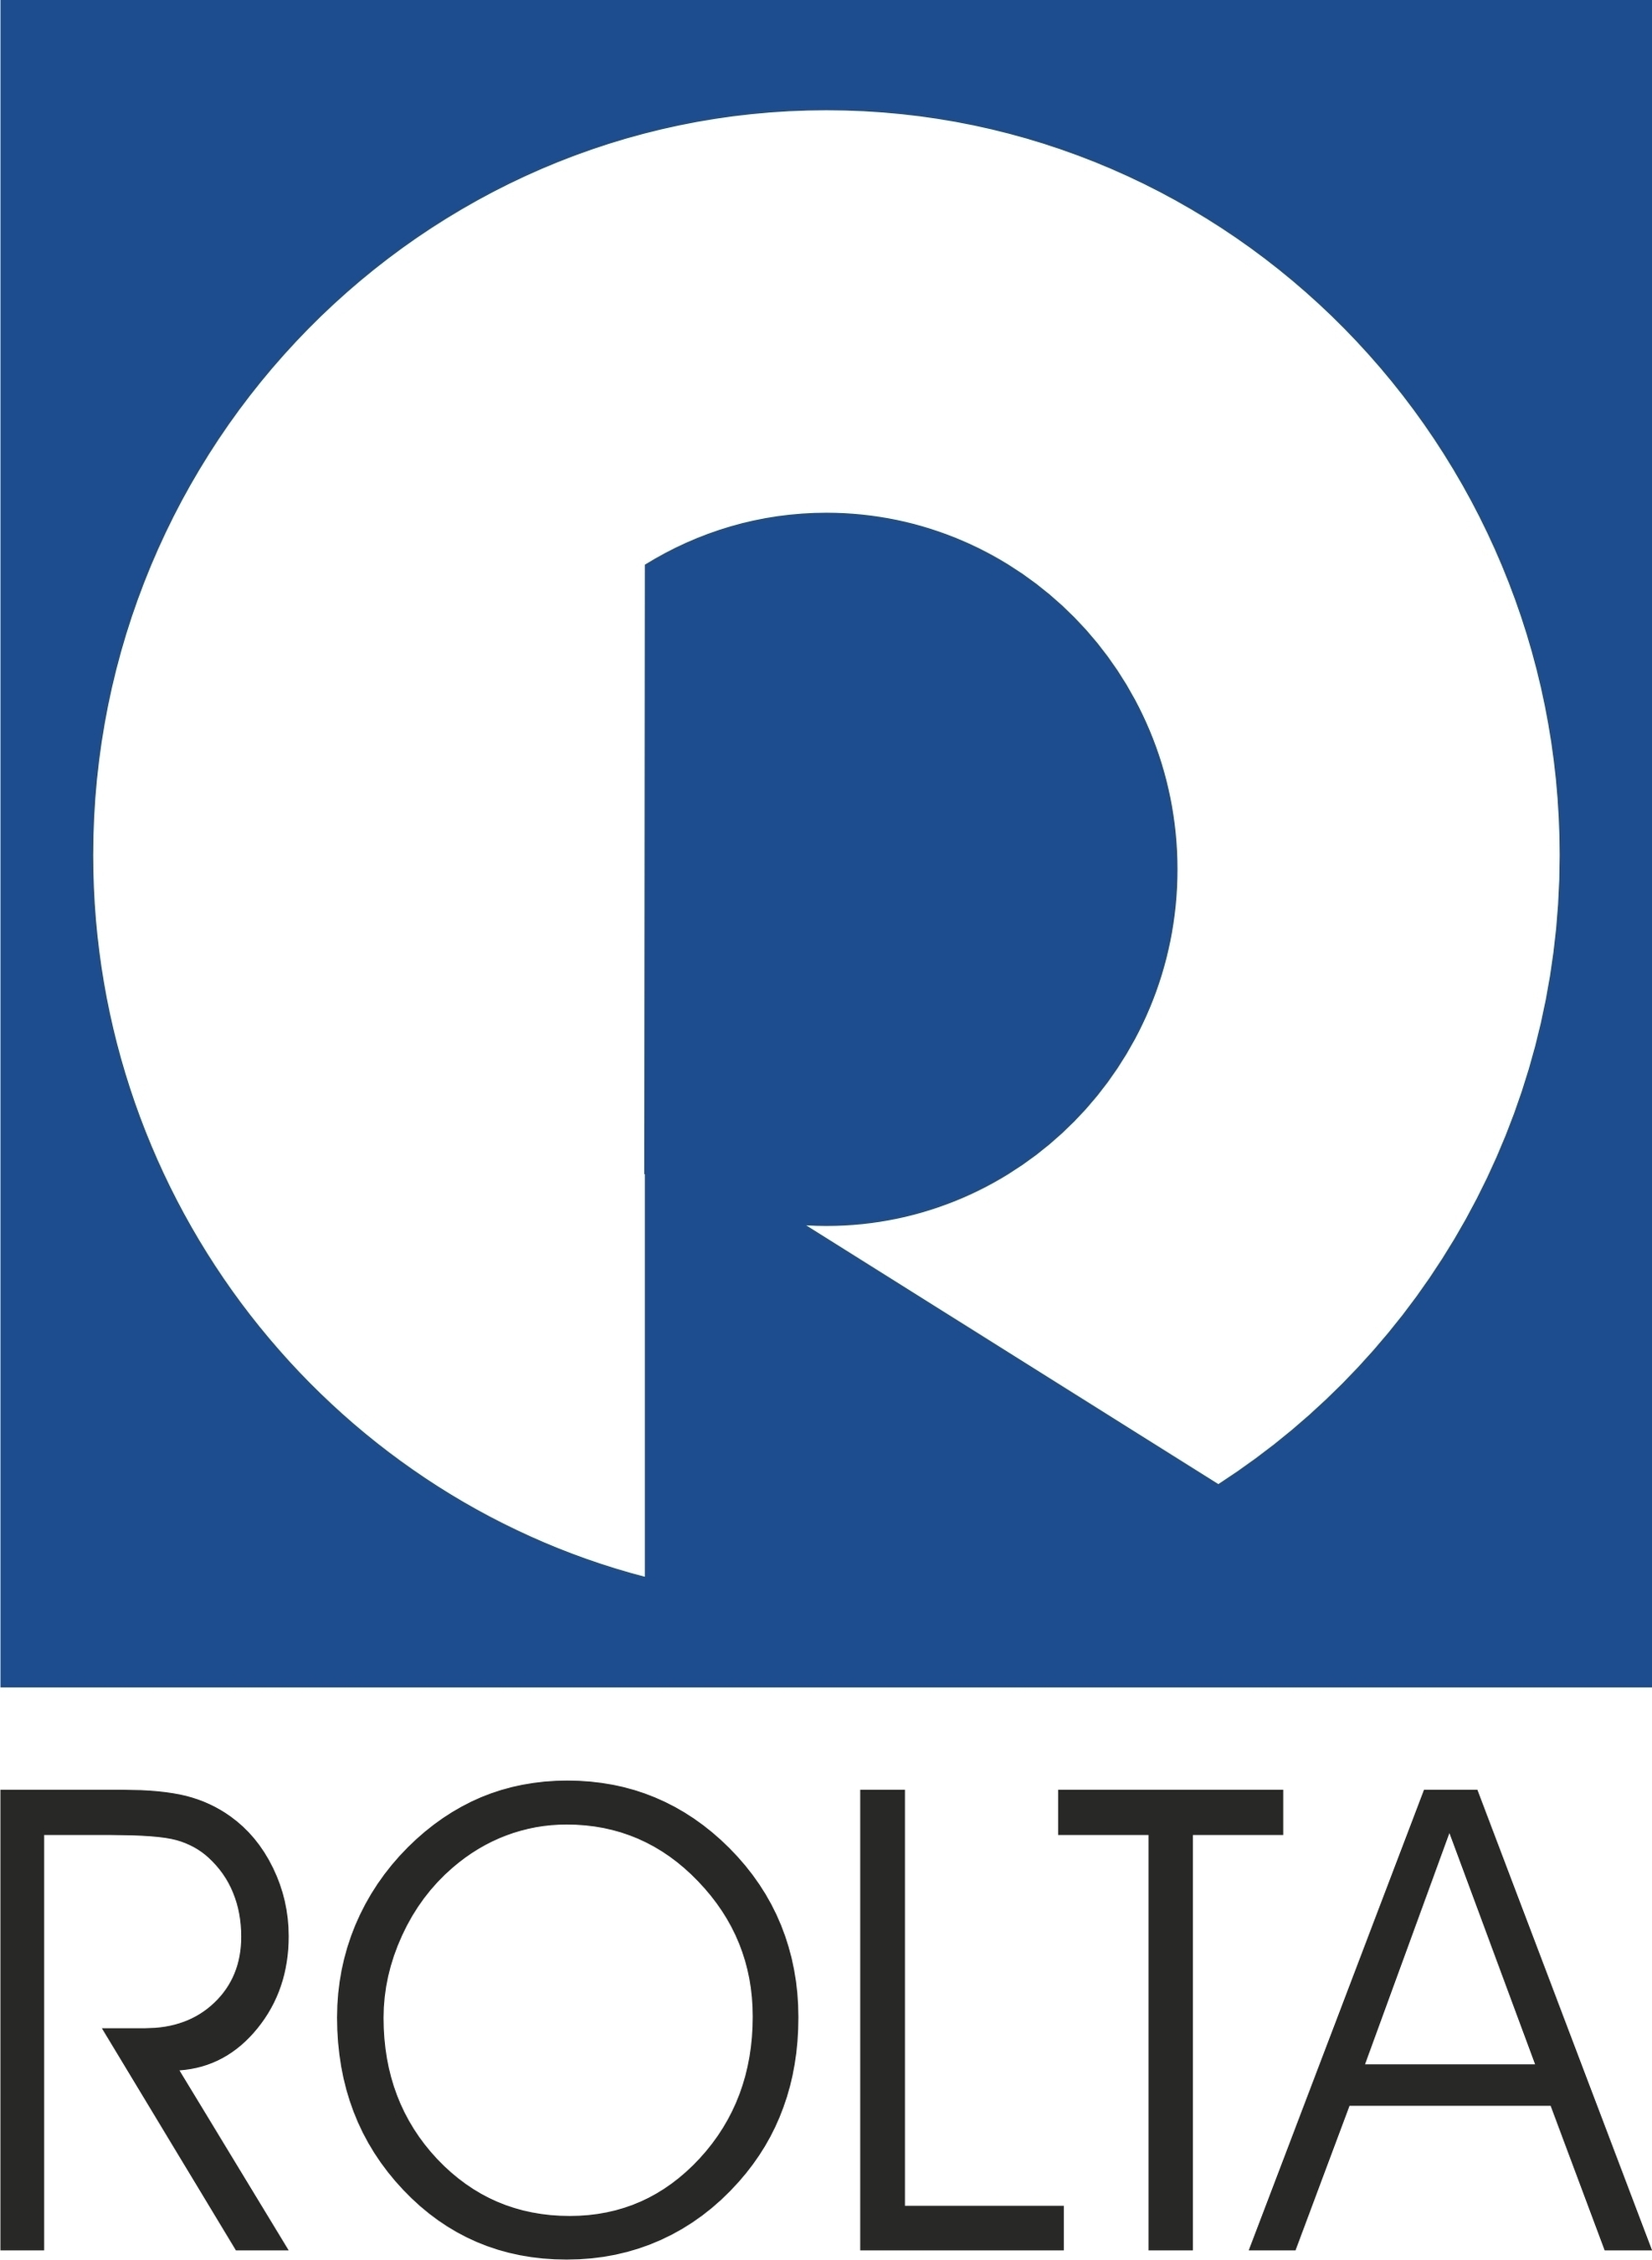 Rolta's FY-15 Consolidated Revenue Grows 18.2% and EBITDA Grows 23.6%